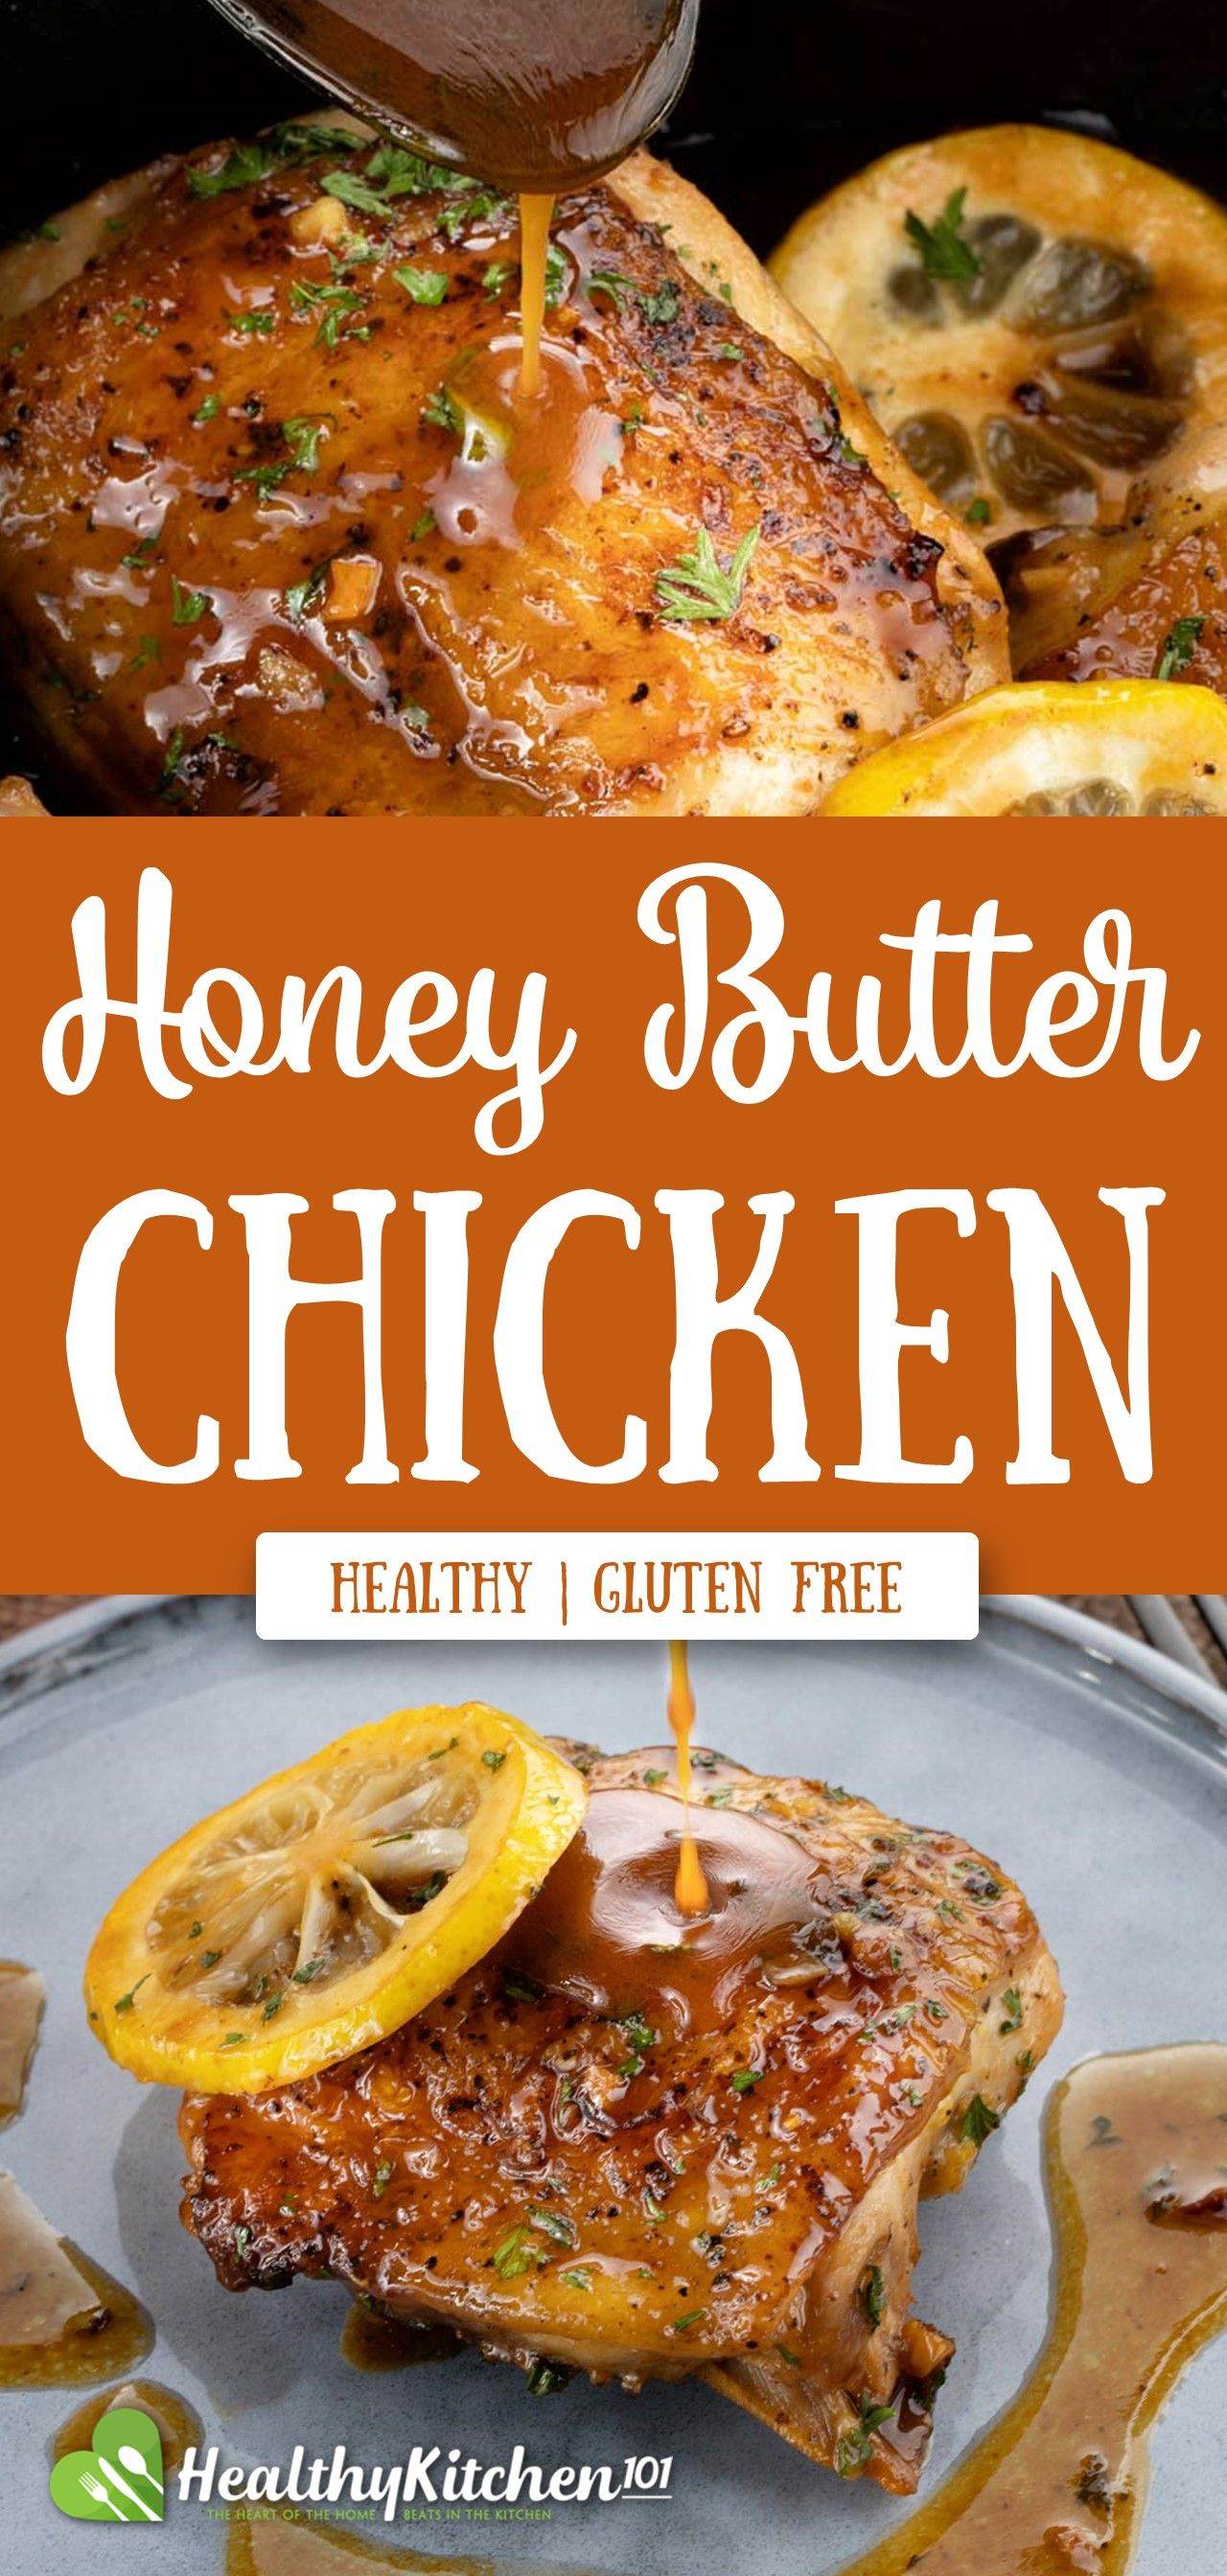 Healthy eating honey butter chicken recipe: Incredibly aromatic for gluten-free diet people